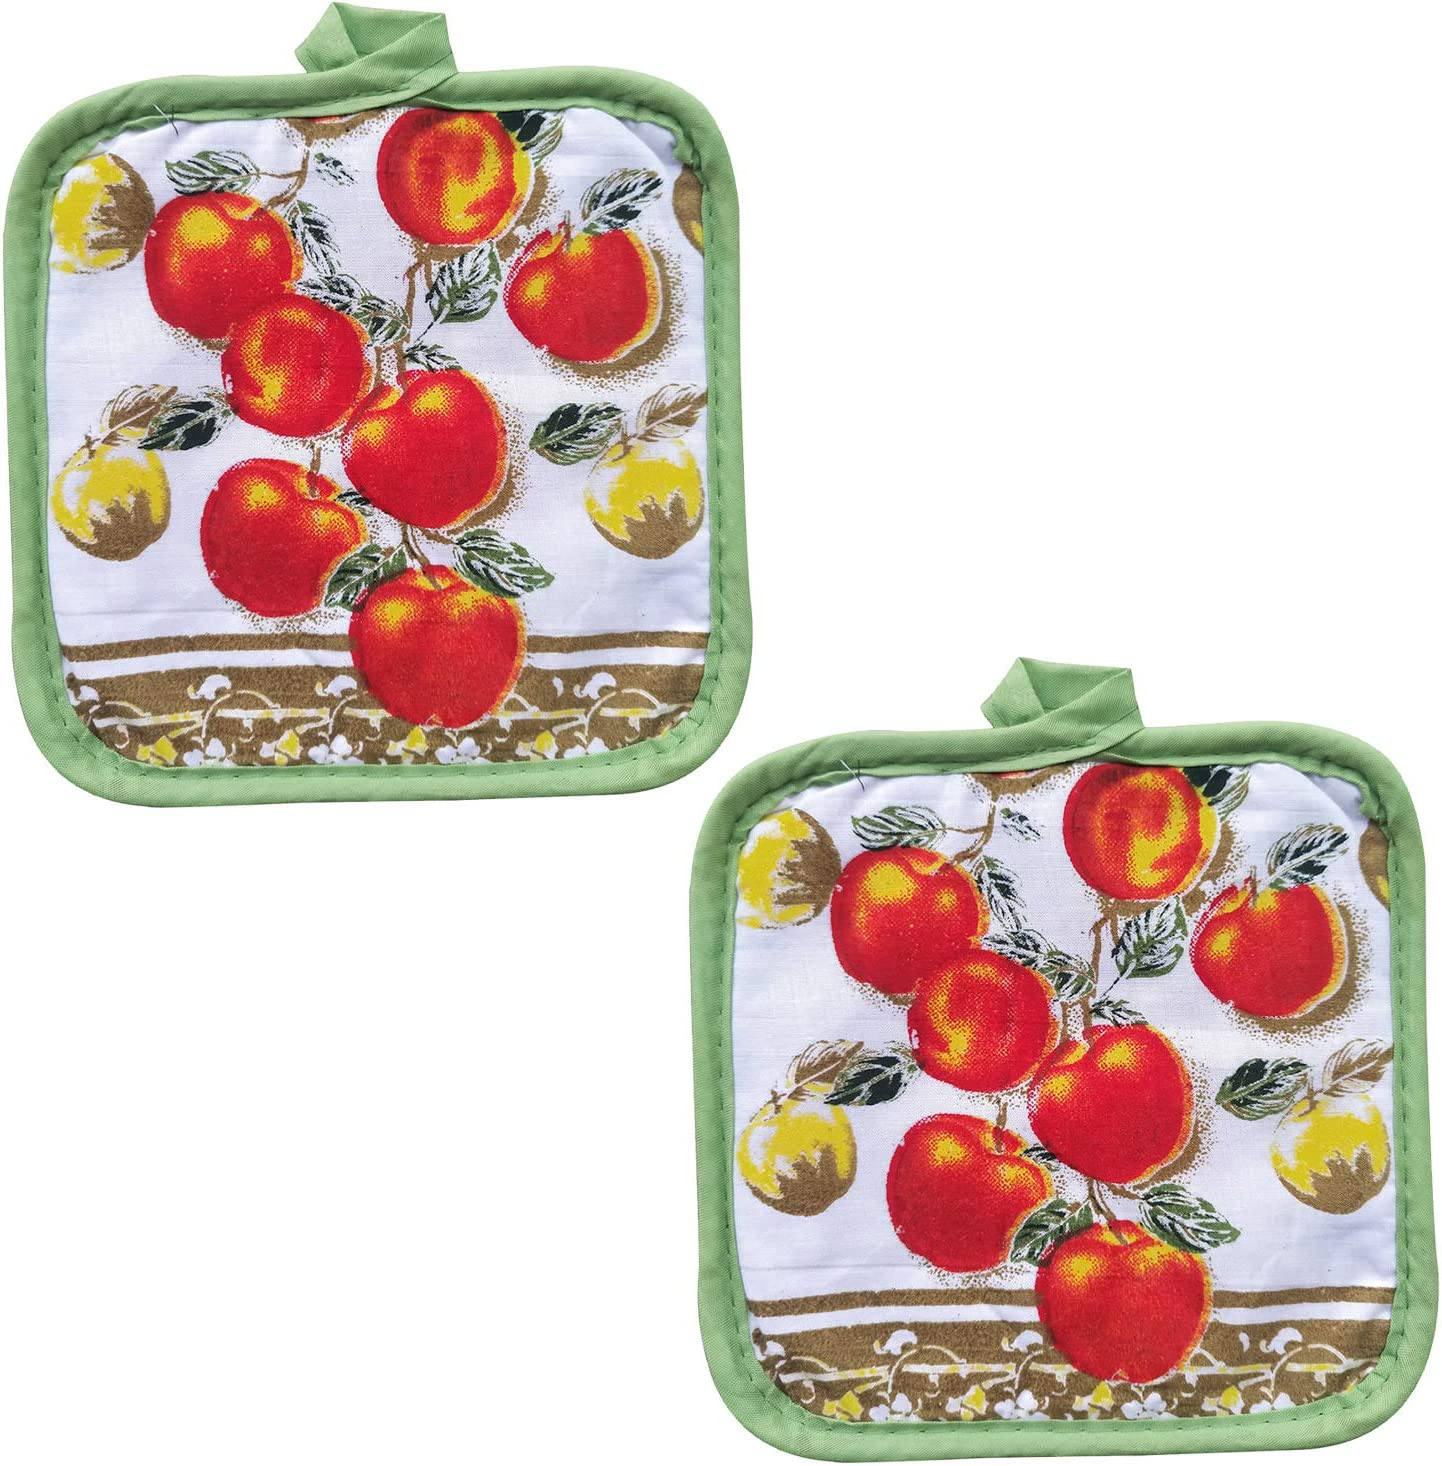 Baking 2 Kitchen Towels for Cooking Set of 6 Piece 2 Heat Insulation Oven Mitt Barbecue FSTIKO Tasty Apple Decor Printed Kitchen Linen Set Includes 2 Towels Pot Holders